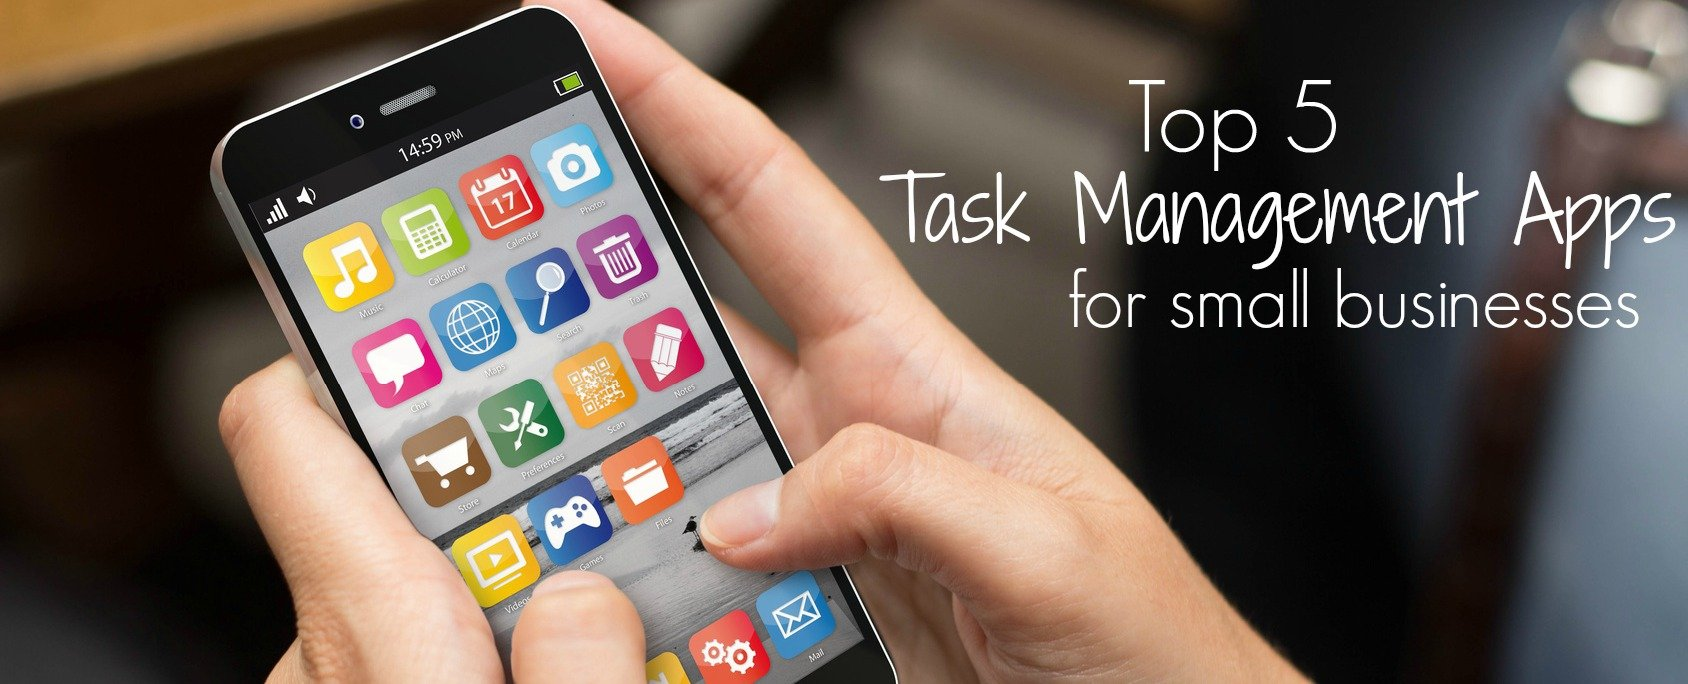 Top 5 Task Management Apps for Small Businesses